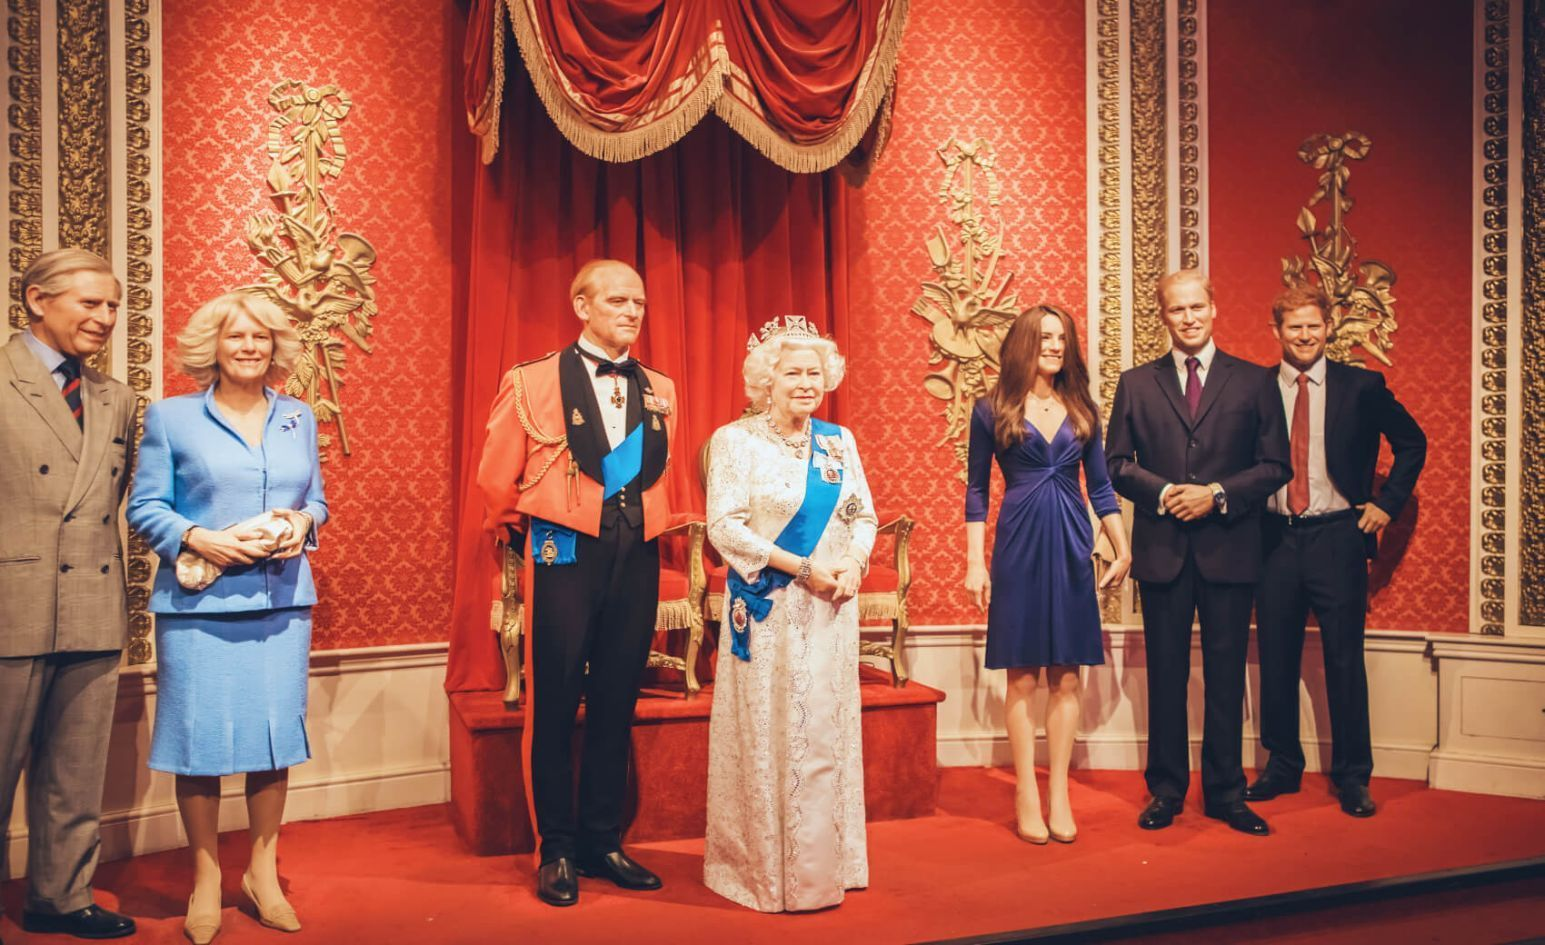 British royal family in Madame Tussauds wax museum in London